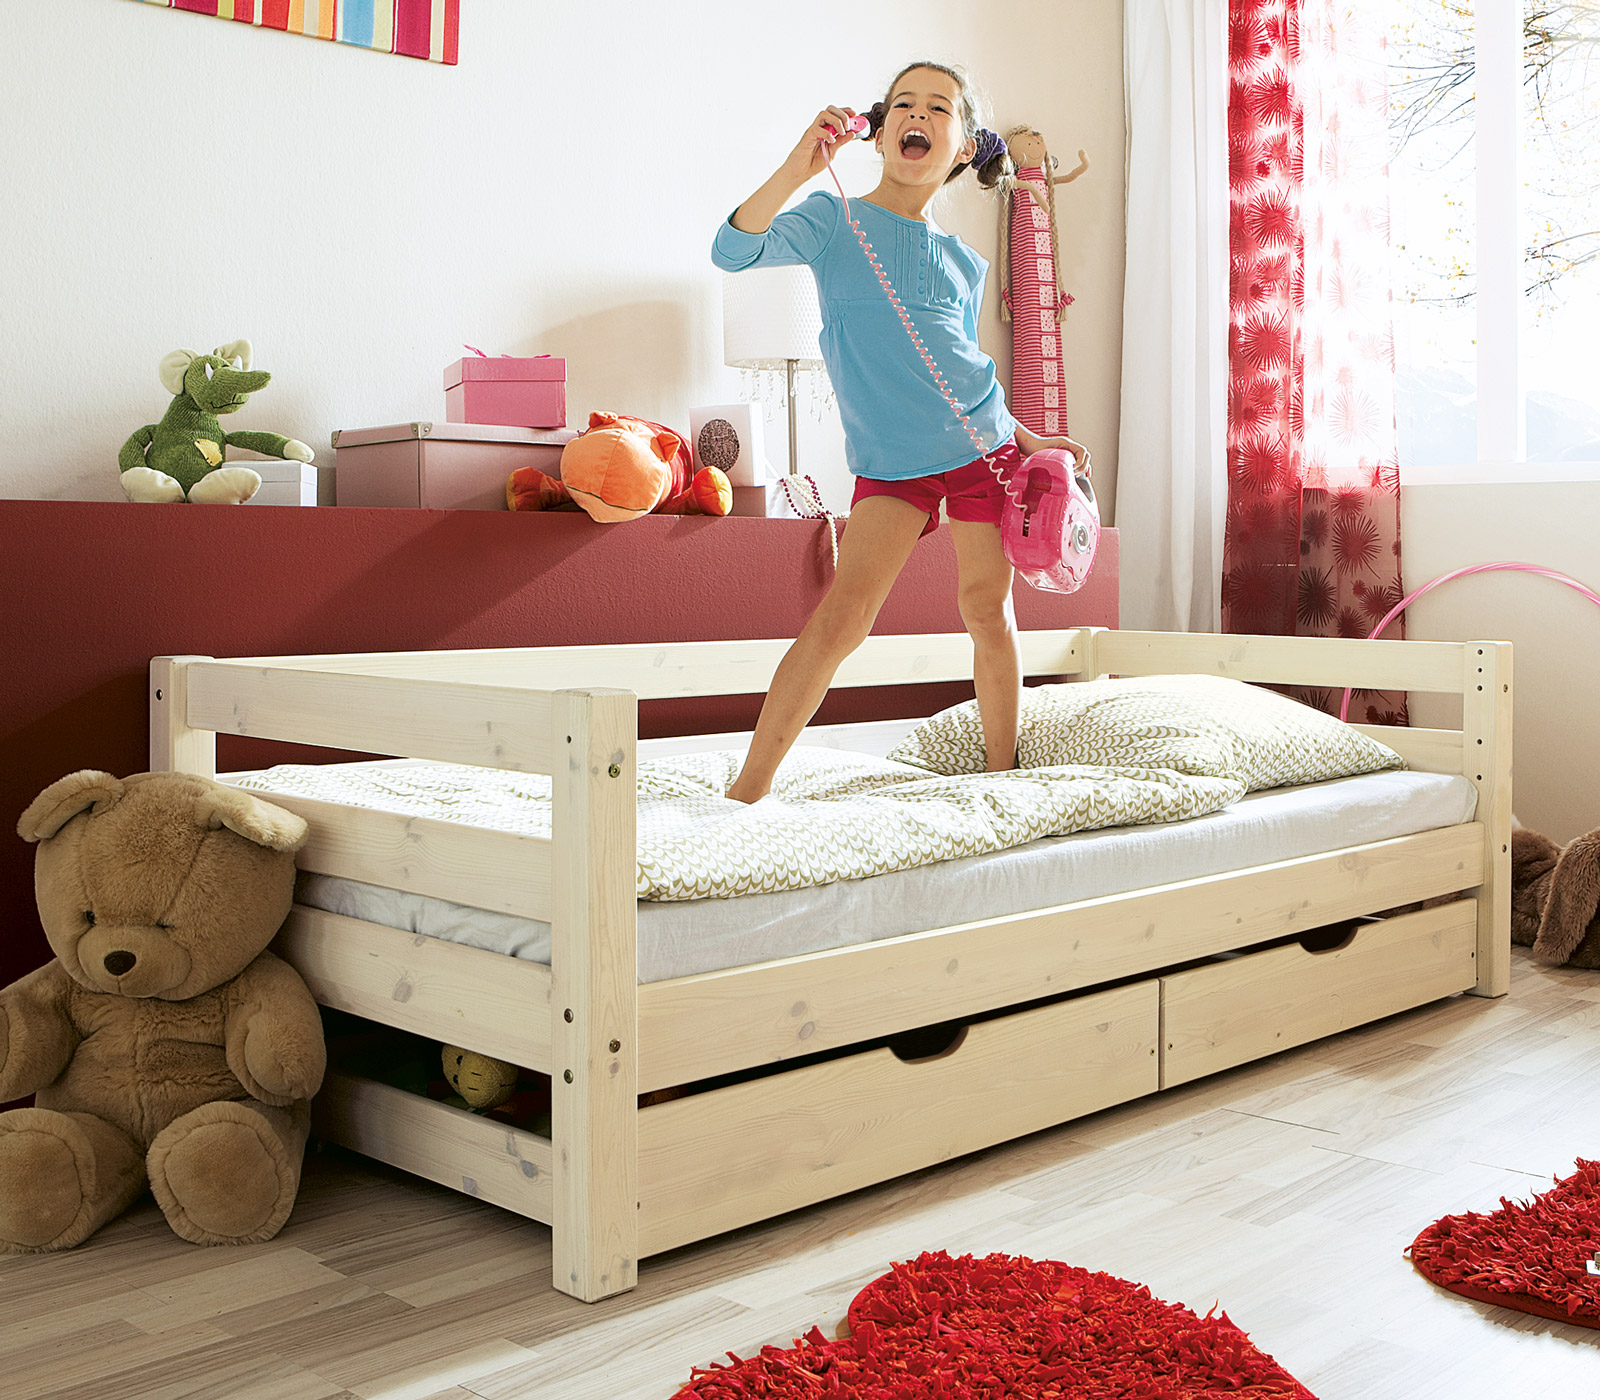 kinderbett in wei aus kiefer t v gepr ft kids paradise. Black Bedroom Furniture Sets. Home Design Ideas